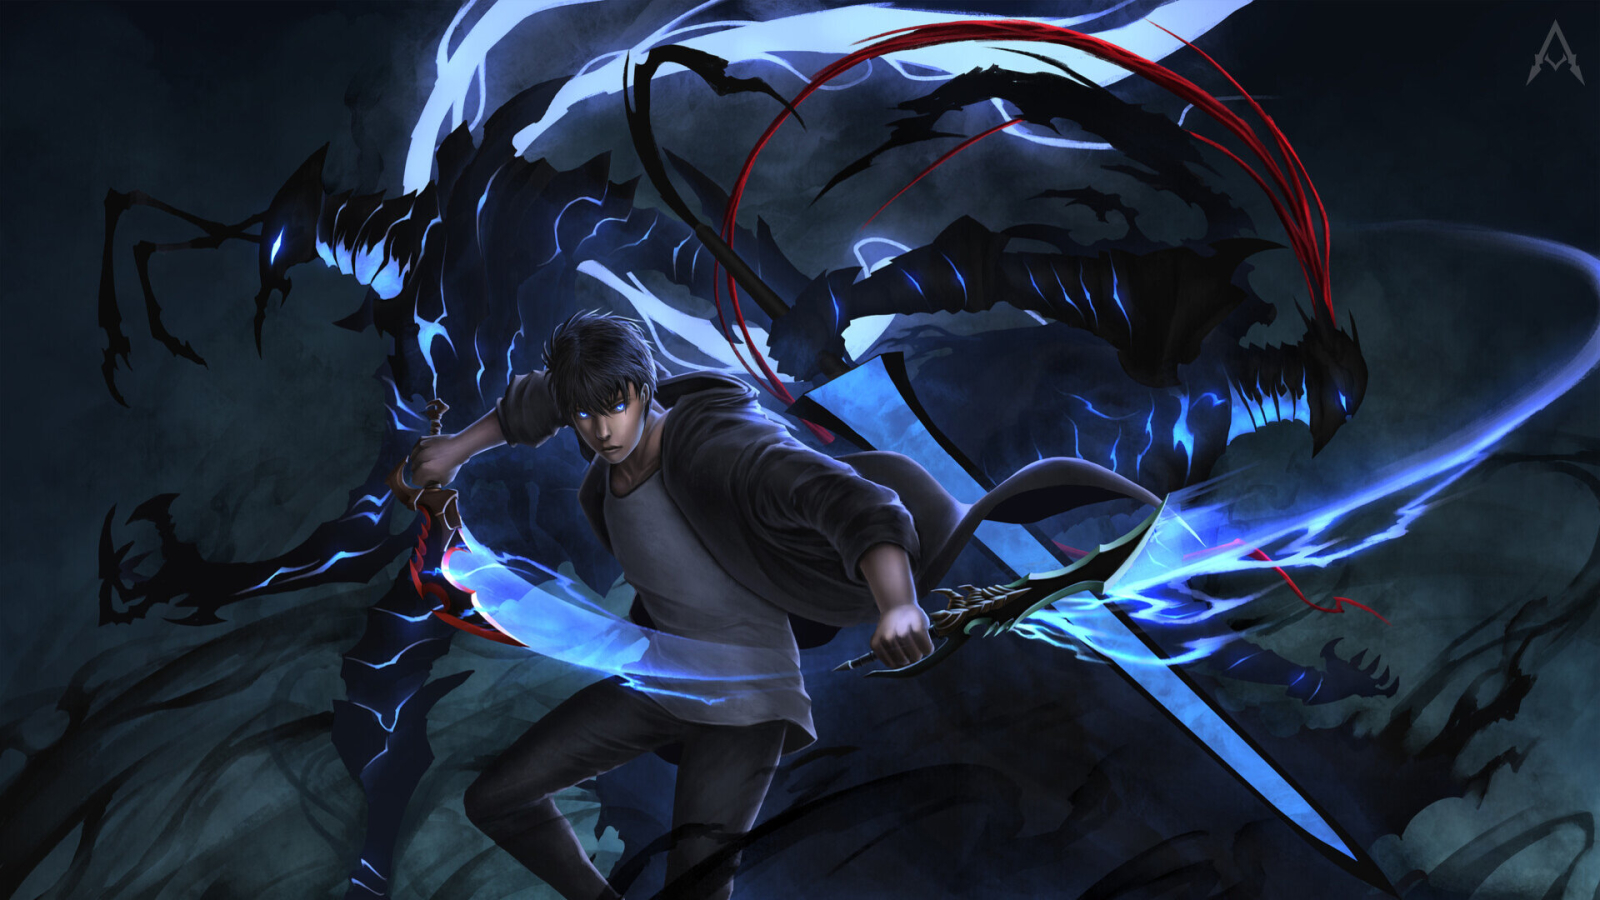 1600x900 Cool Solo Leveling 1600x900 Resolution Wallpaper ...